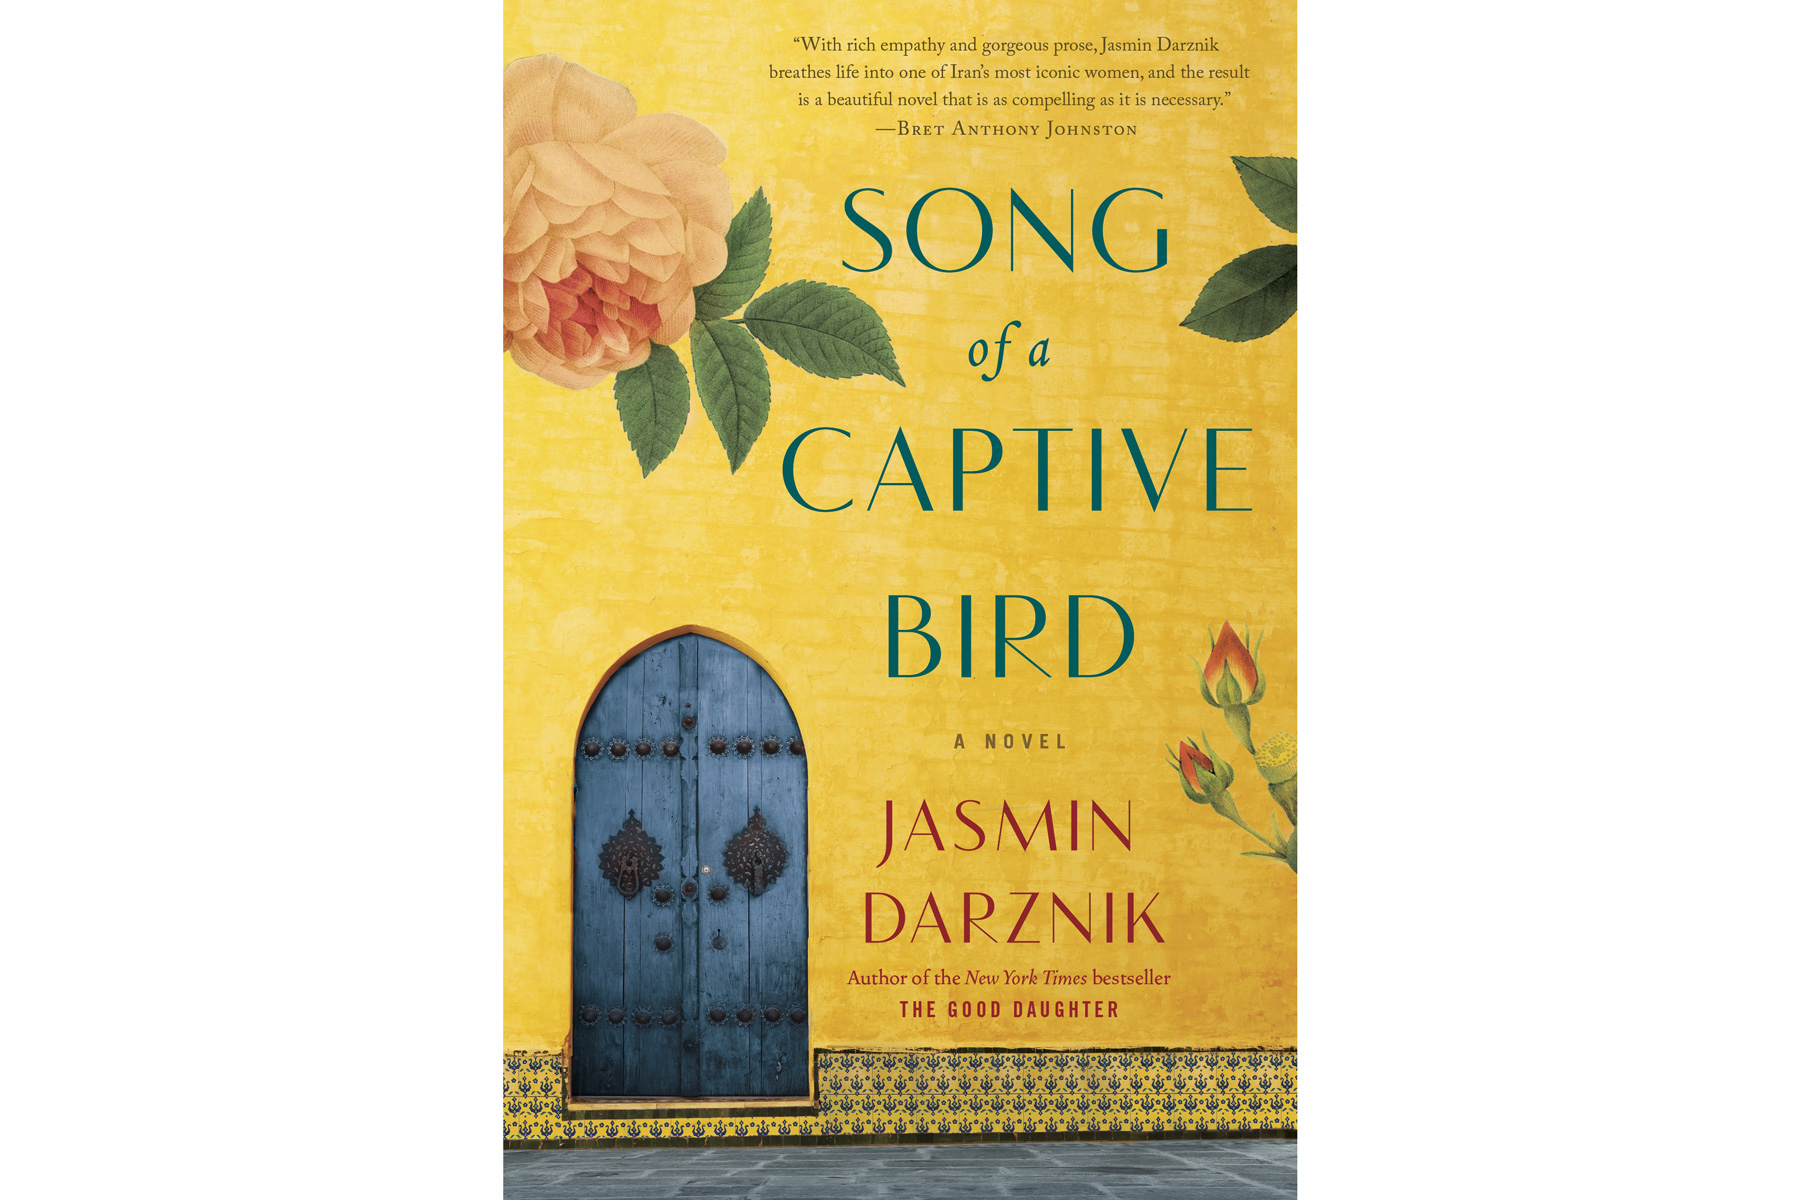 Song of a Captive Bird, by Jasmin Darznik